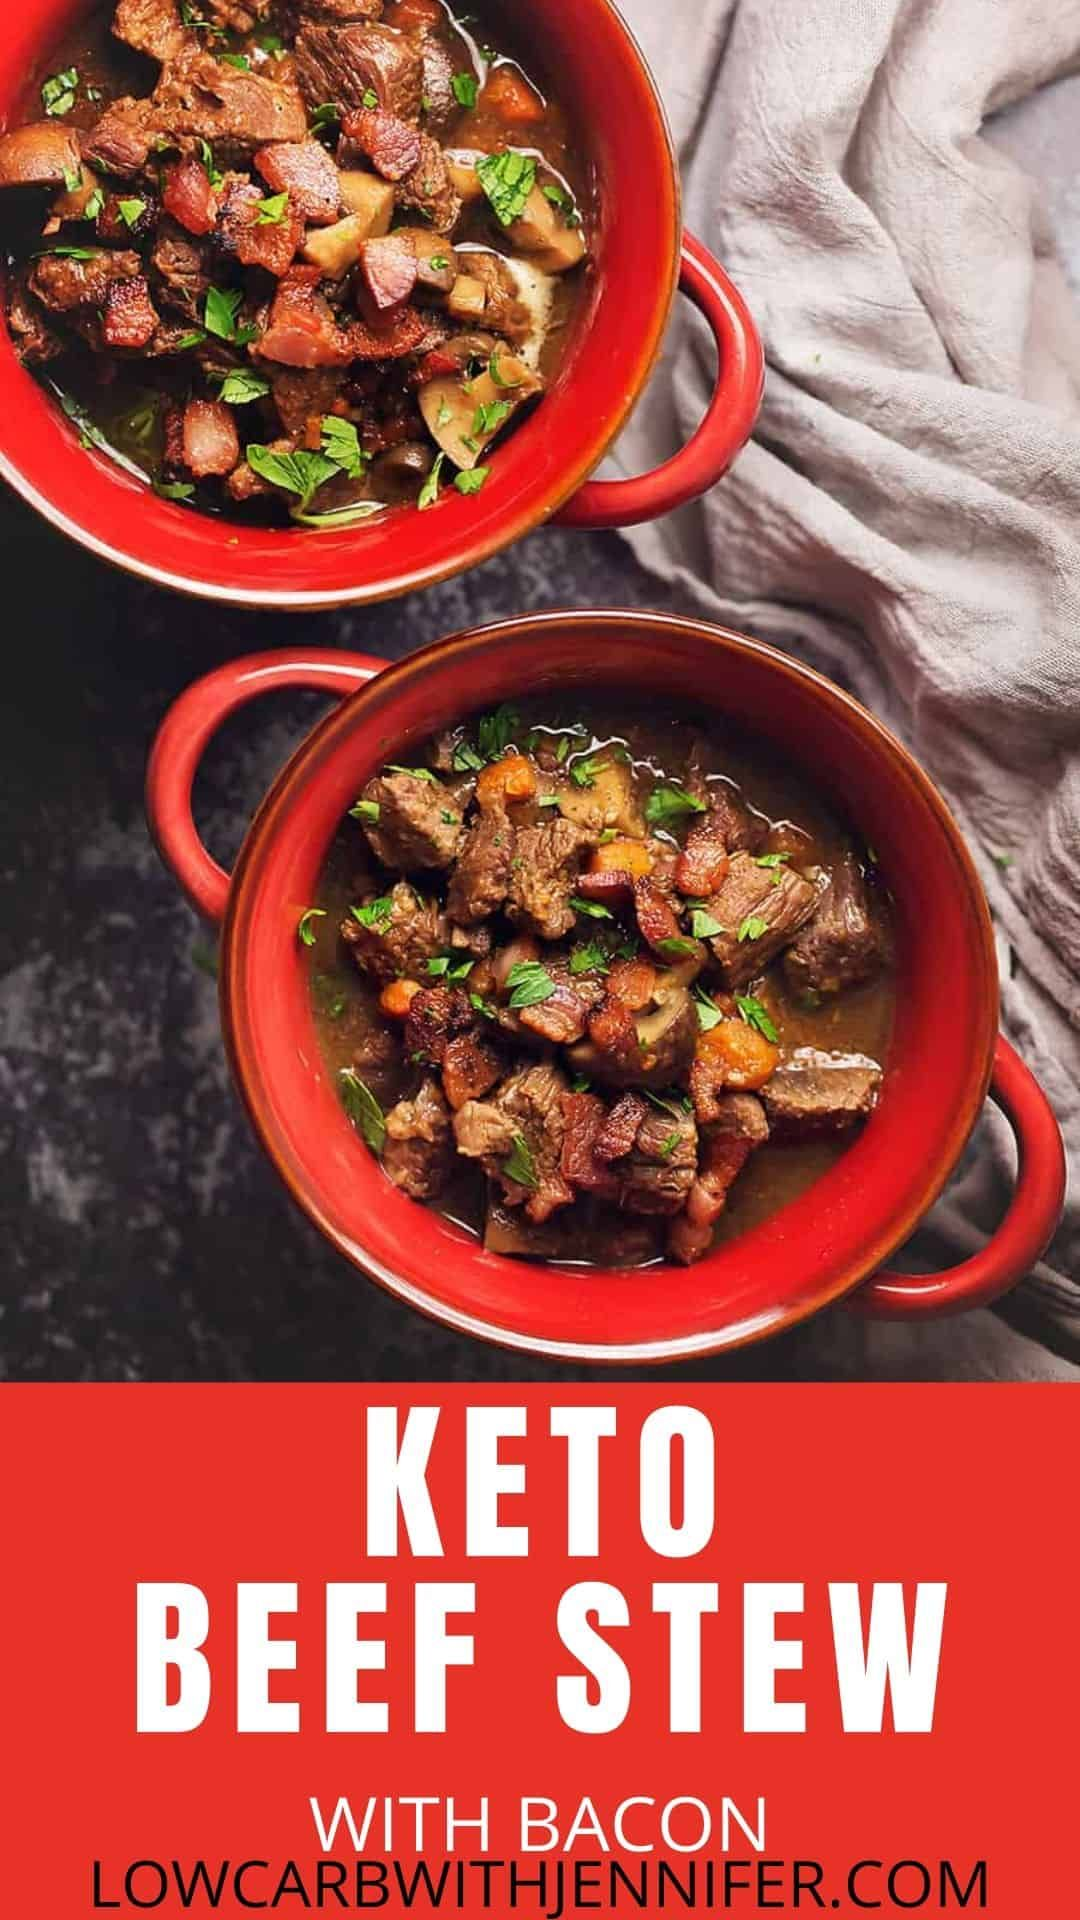 Keto Beef Stew With Bacon Instant Pot Stove Top Or Crockpot Low Carb With Jennifer In 2020 Keto Beef Stew Low Carb Beef Stew Tasty Beef Stew